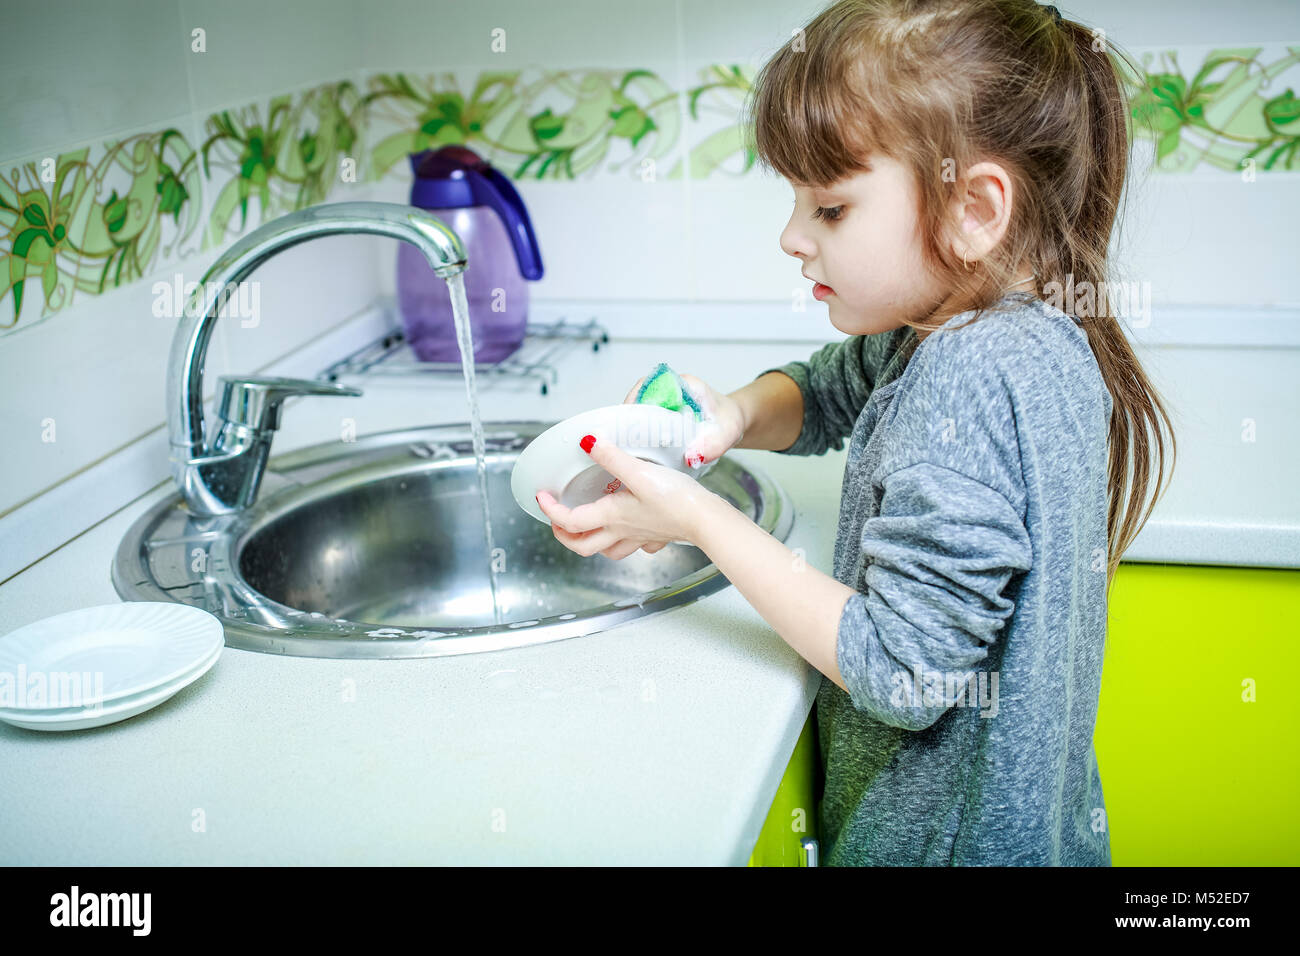 A little girl stands on a chair and carefully washes dishes in the ...